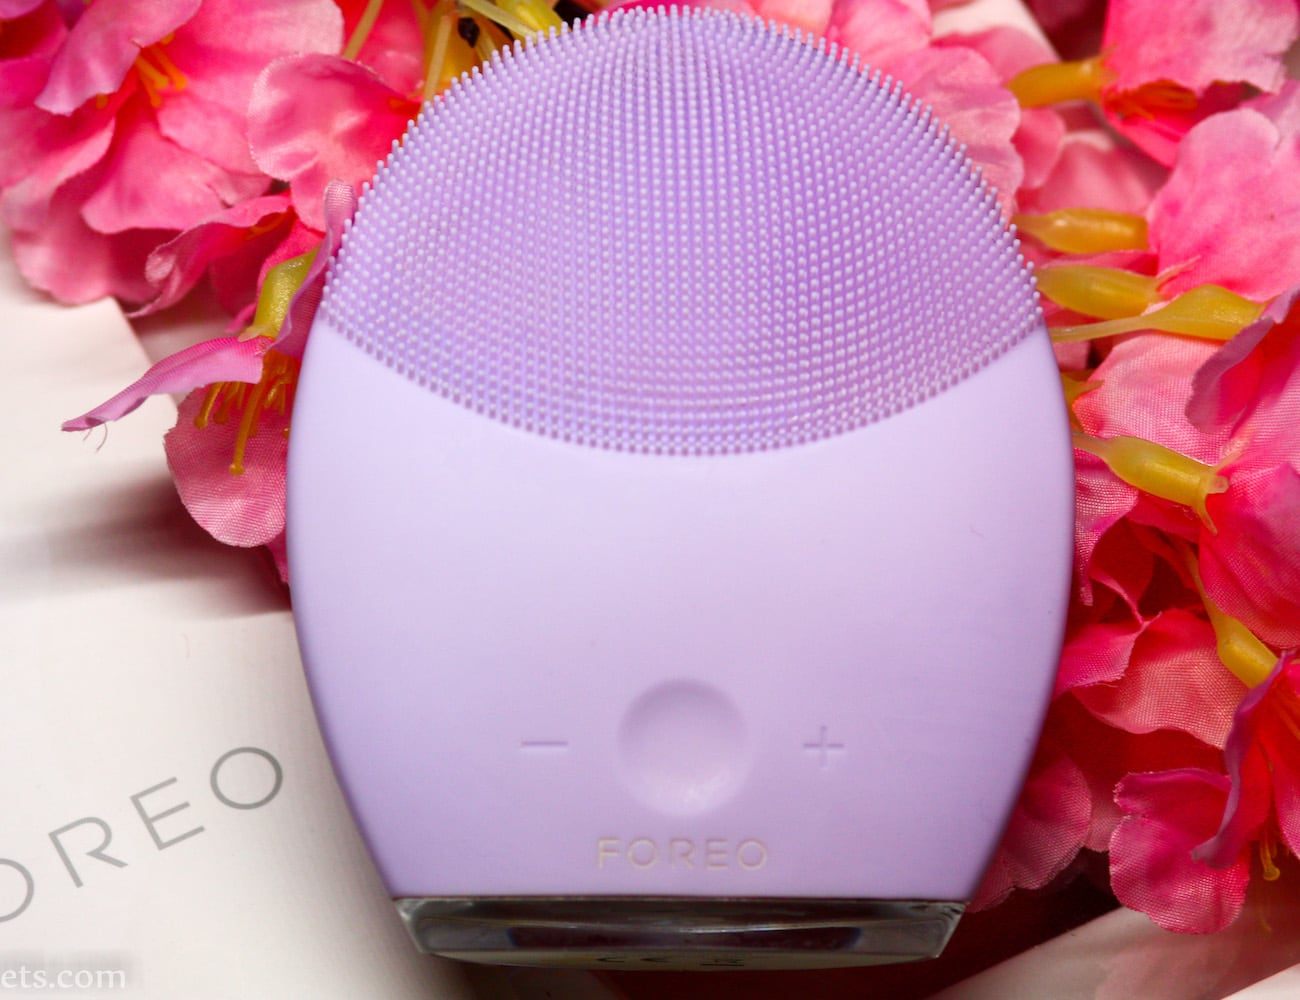 Foreo LUNA 2 Facial Spa Massager helps reduce the presence of wrinkles